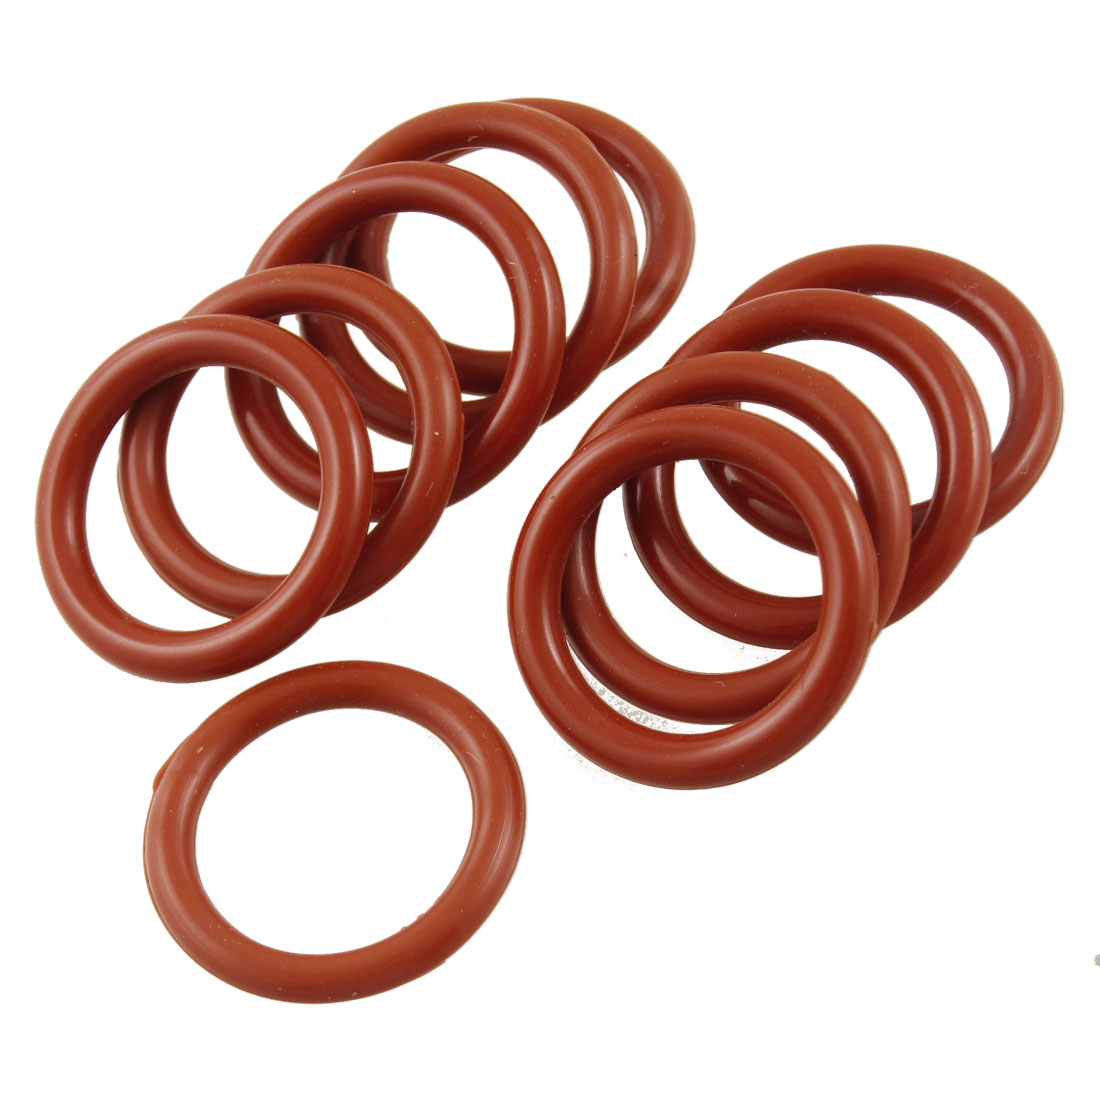 10 Pcs Silicone O Ring Seal Sealing Washer 16mm x 22mm x 3mm